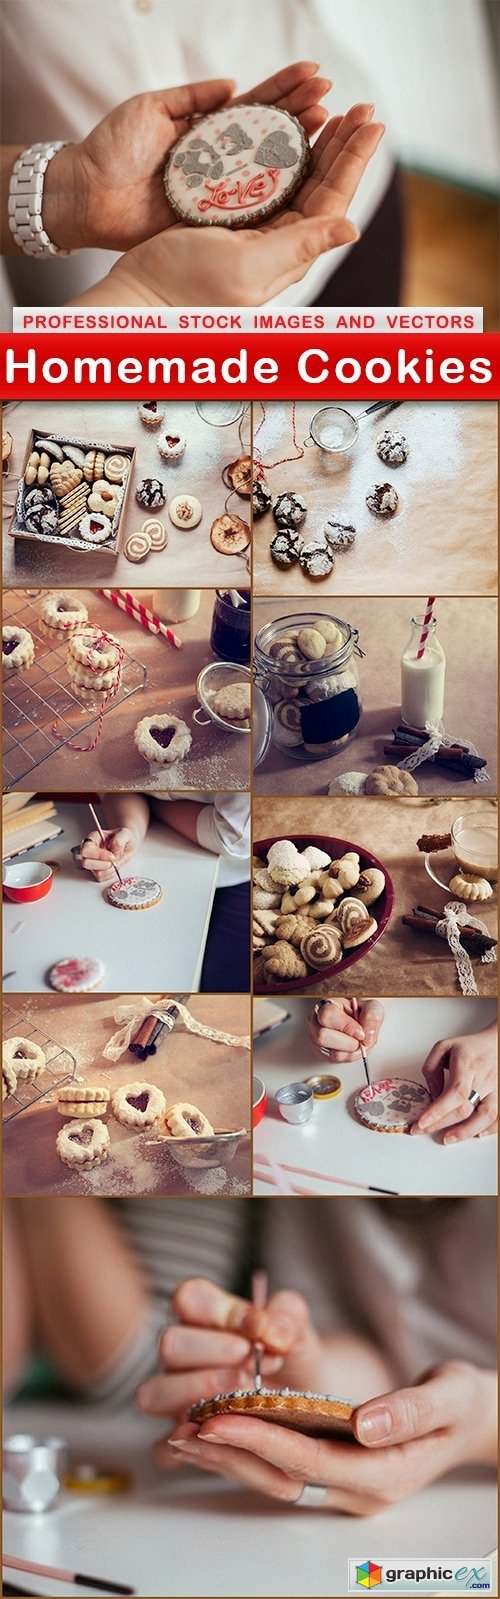 Homemade Cookies - 10 UHQ JPEG